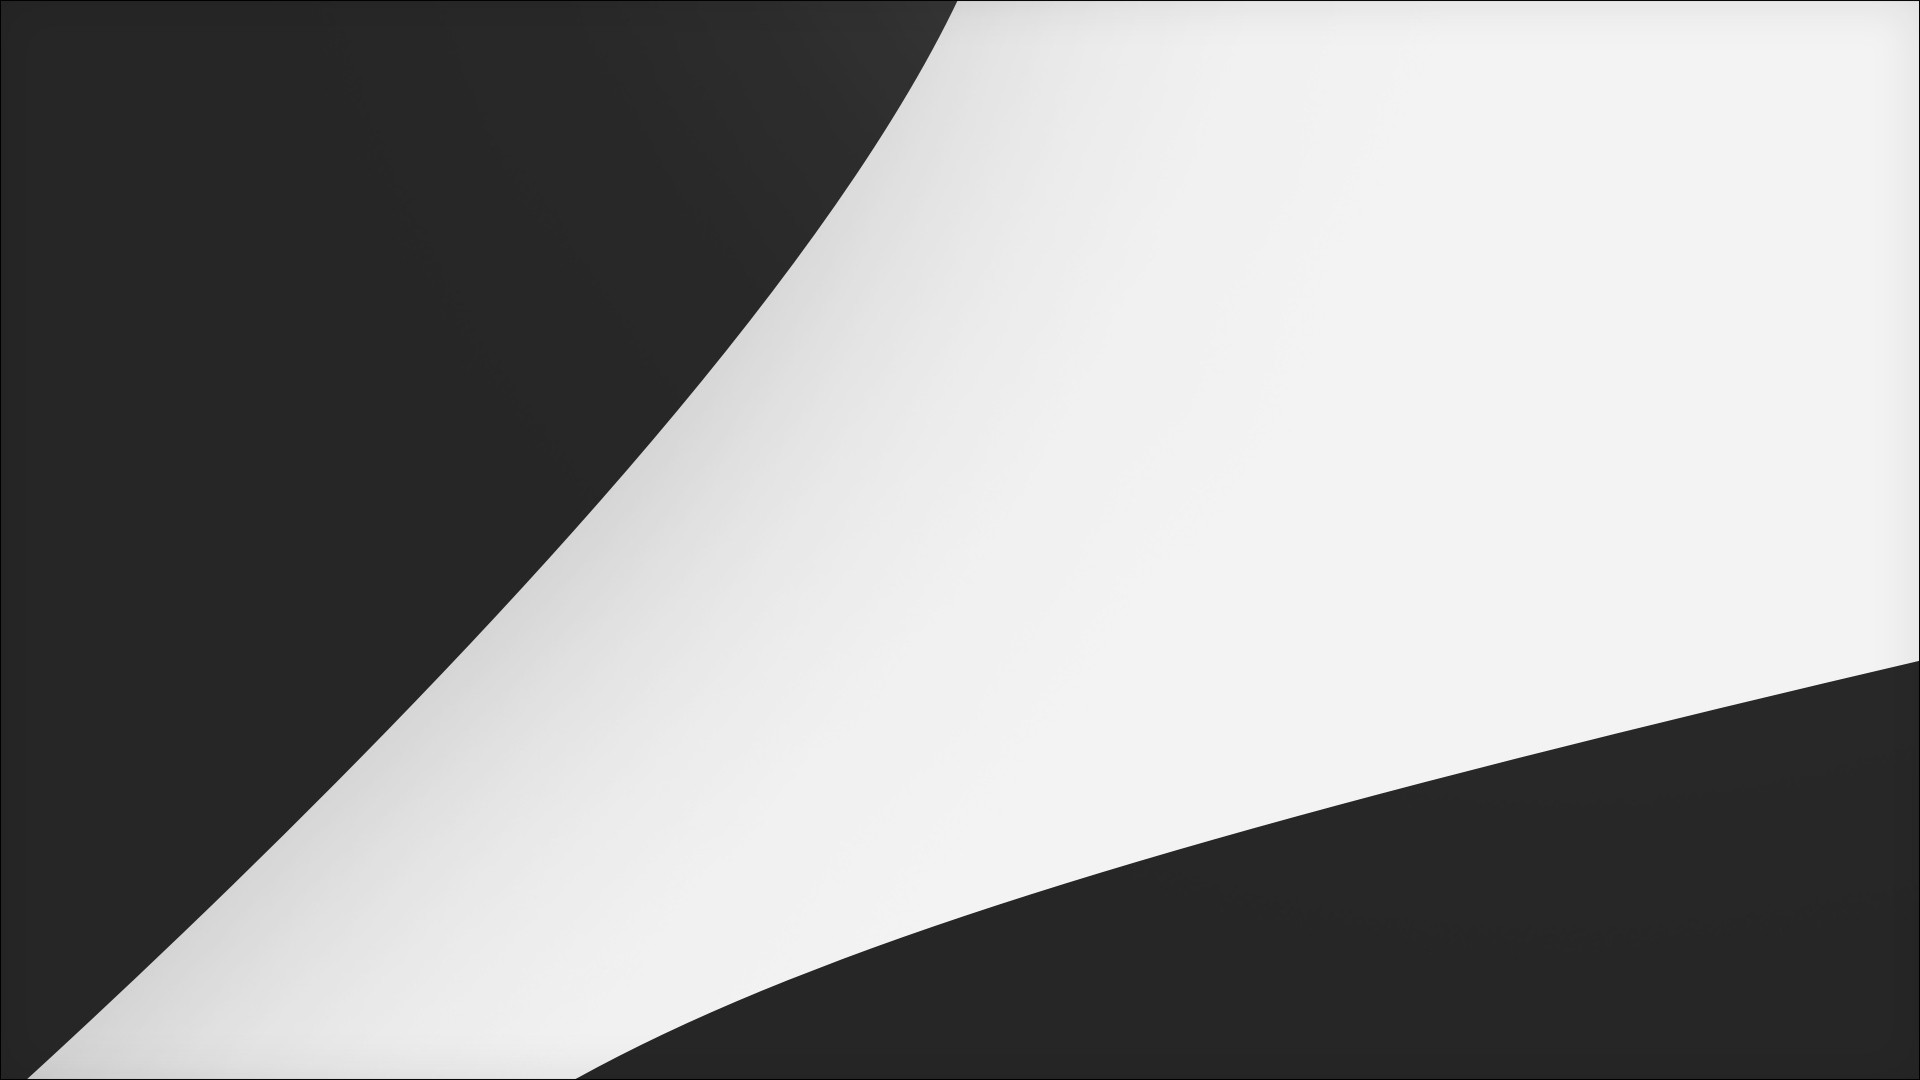 1920x1080 Black And White Abstract Desktop Pc And Mac Wallpaper